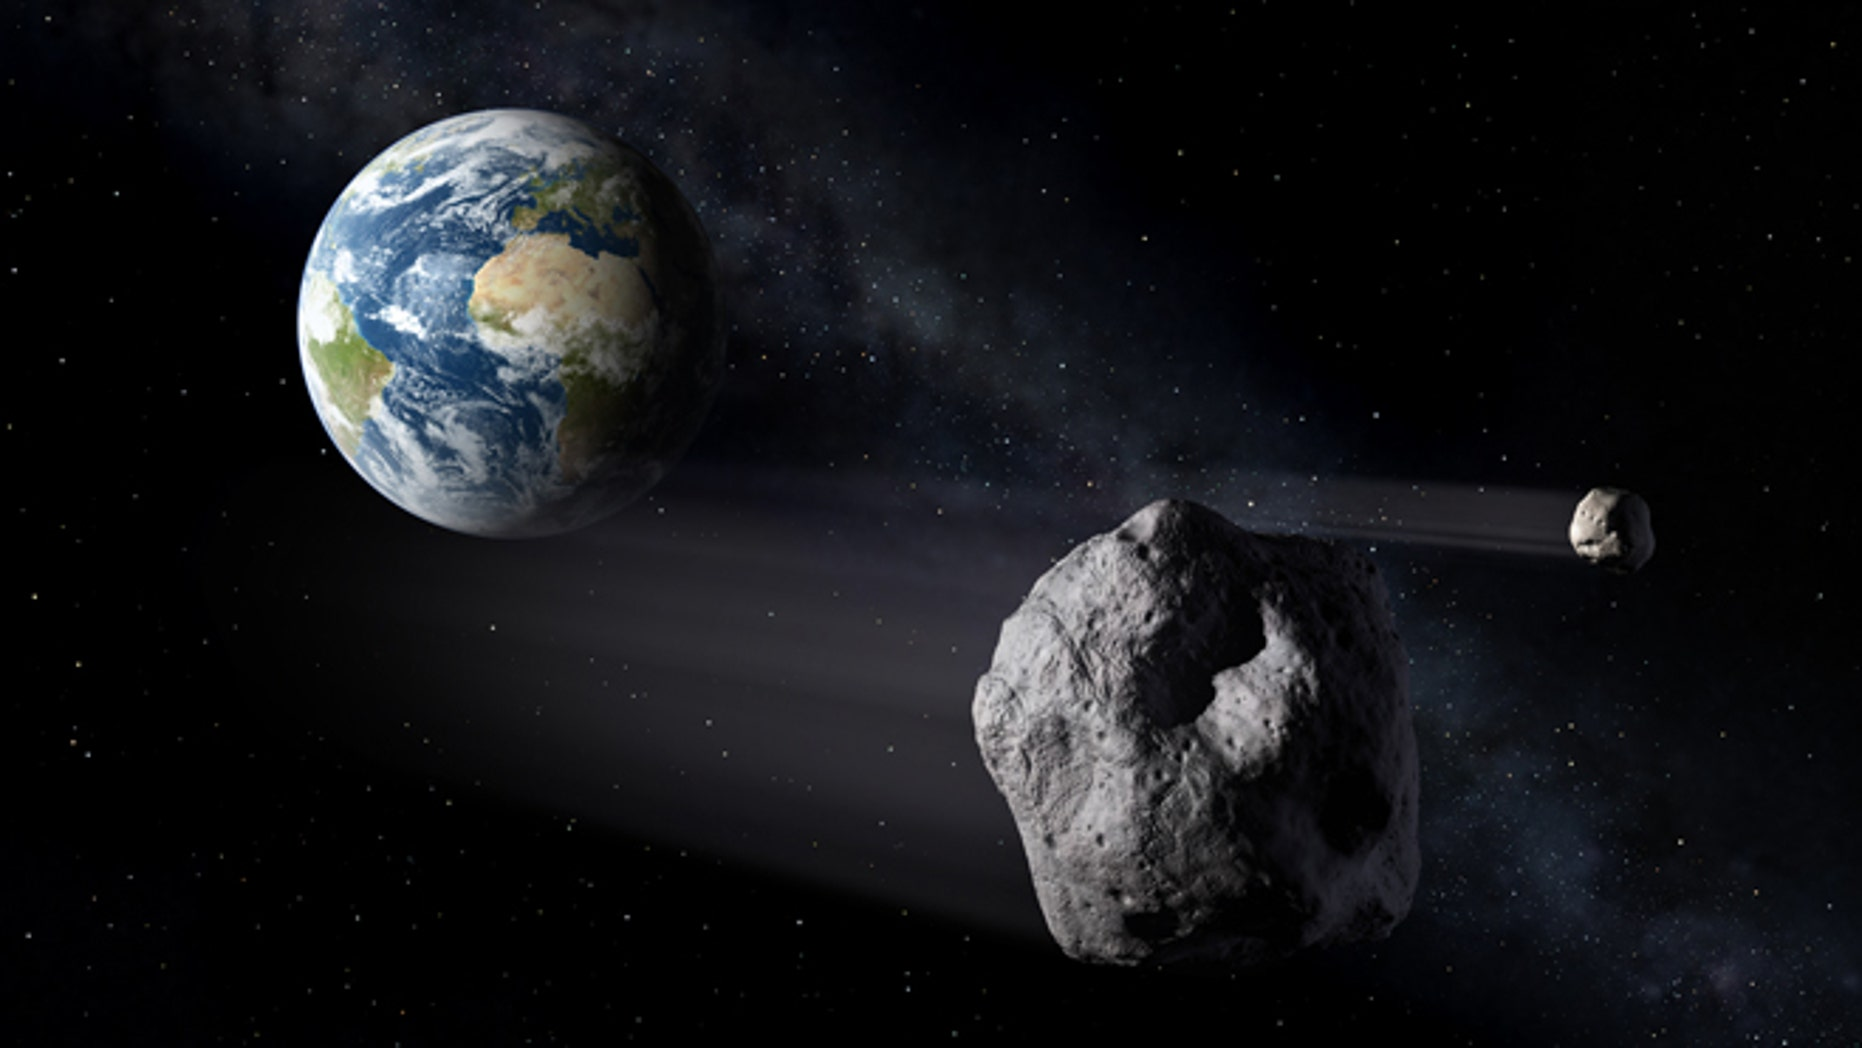 An artist's illustration of asteroids, or near-Earth objects, that highlight the need for a complete Space Situational Awareness system.